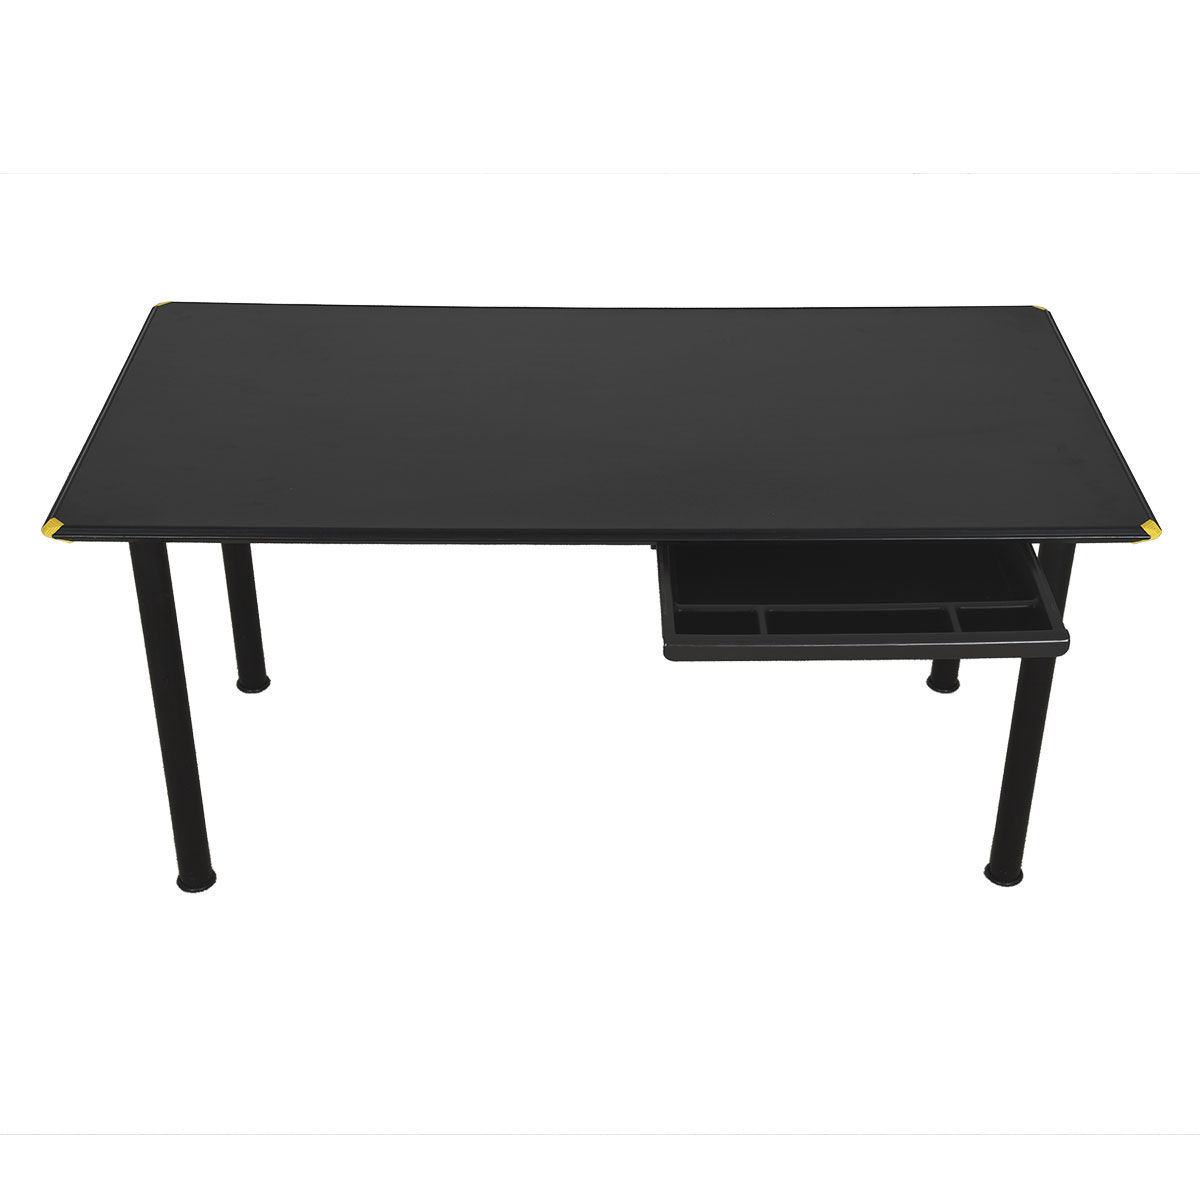 Minimalist Herman Miller Matte Black Desk w/ Single Drawer